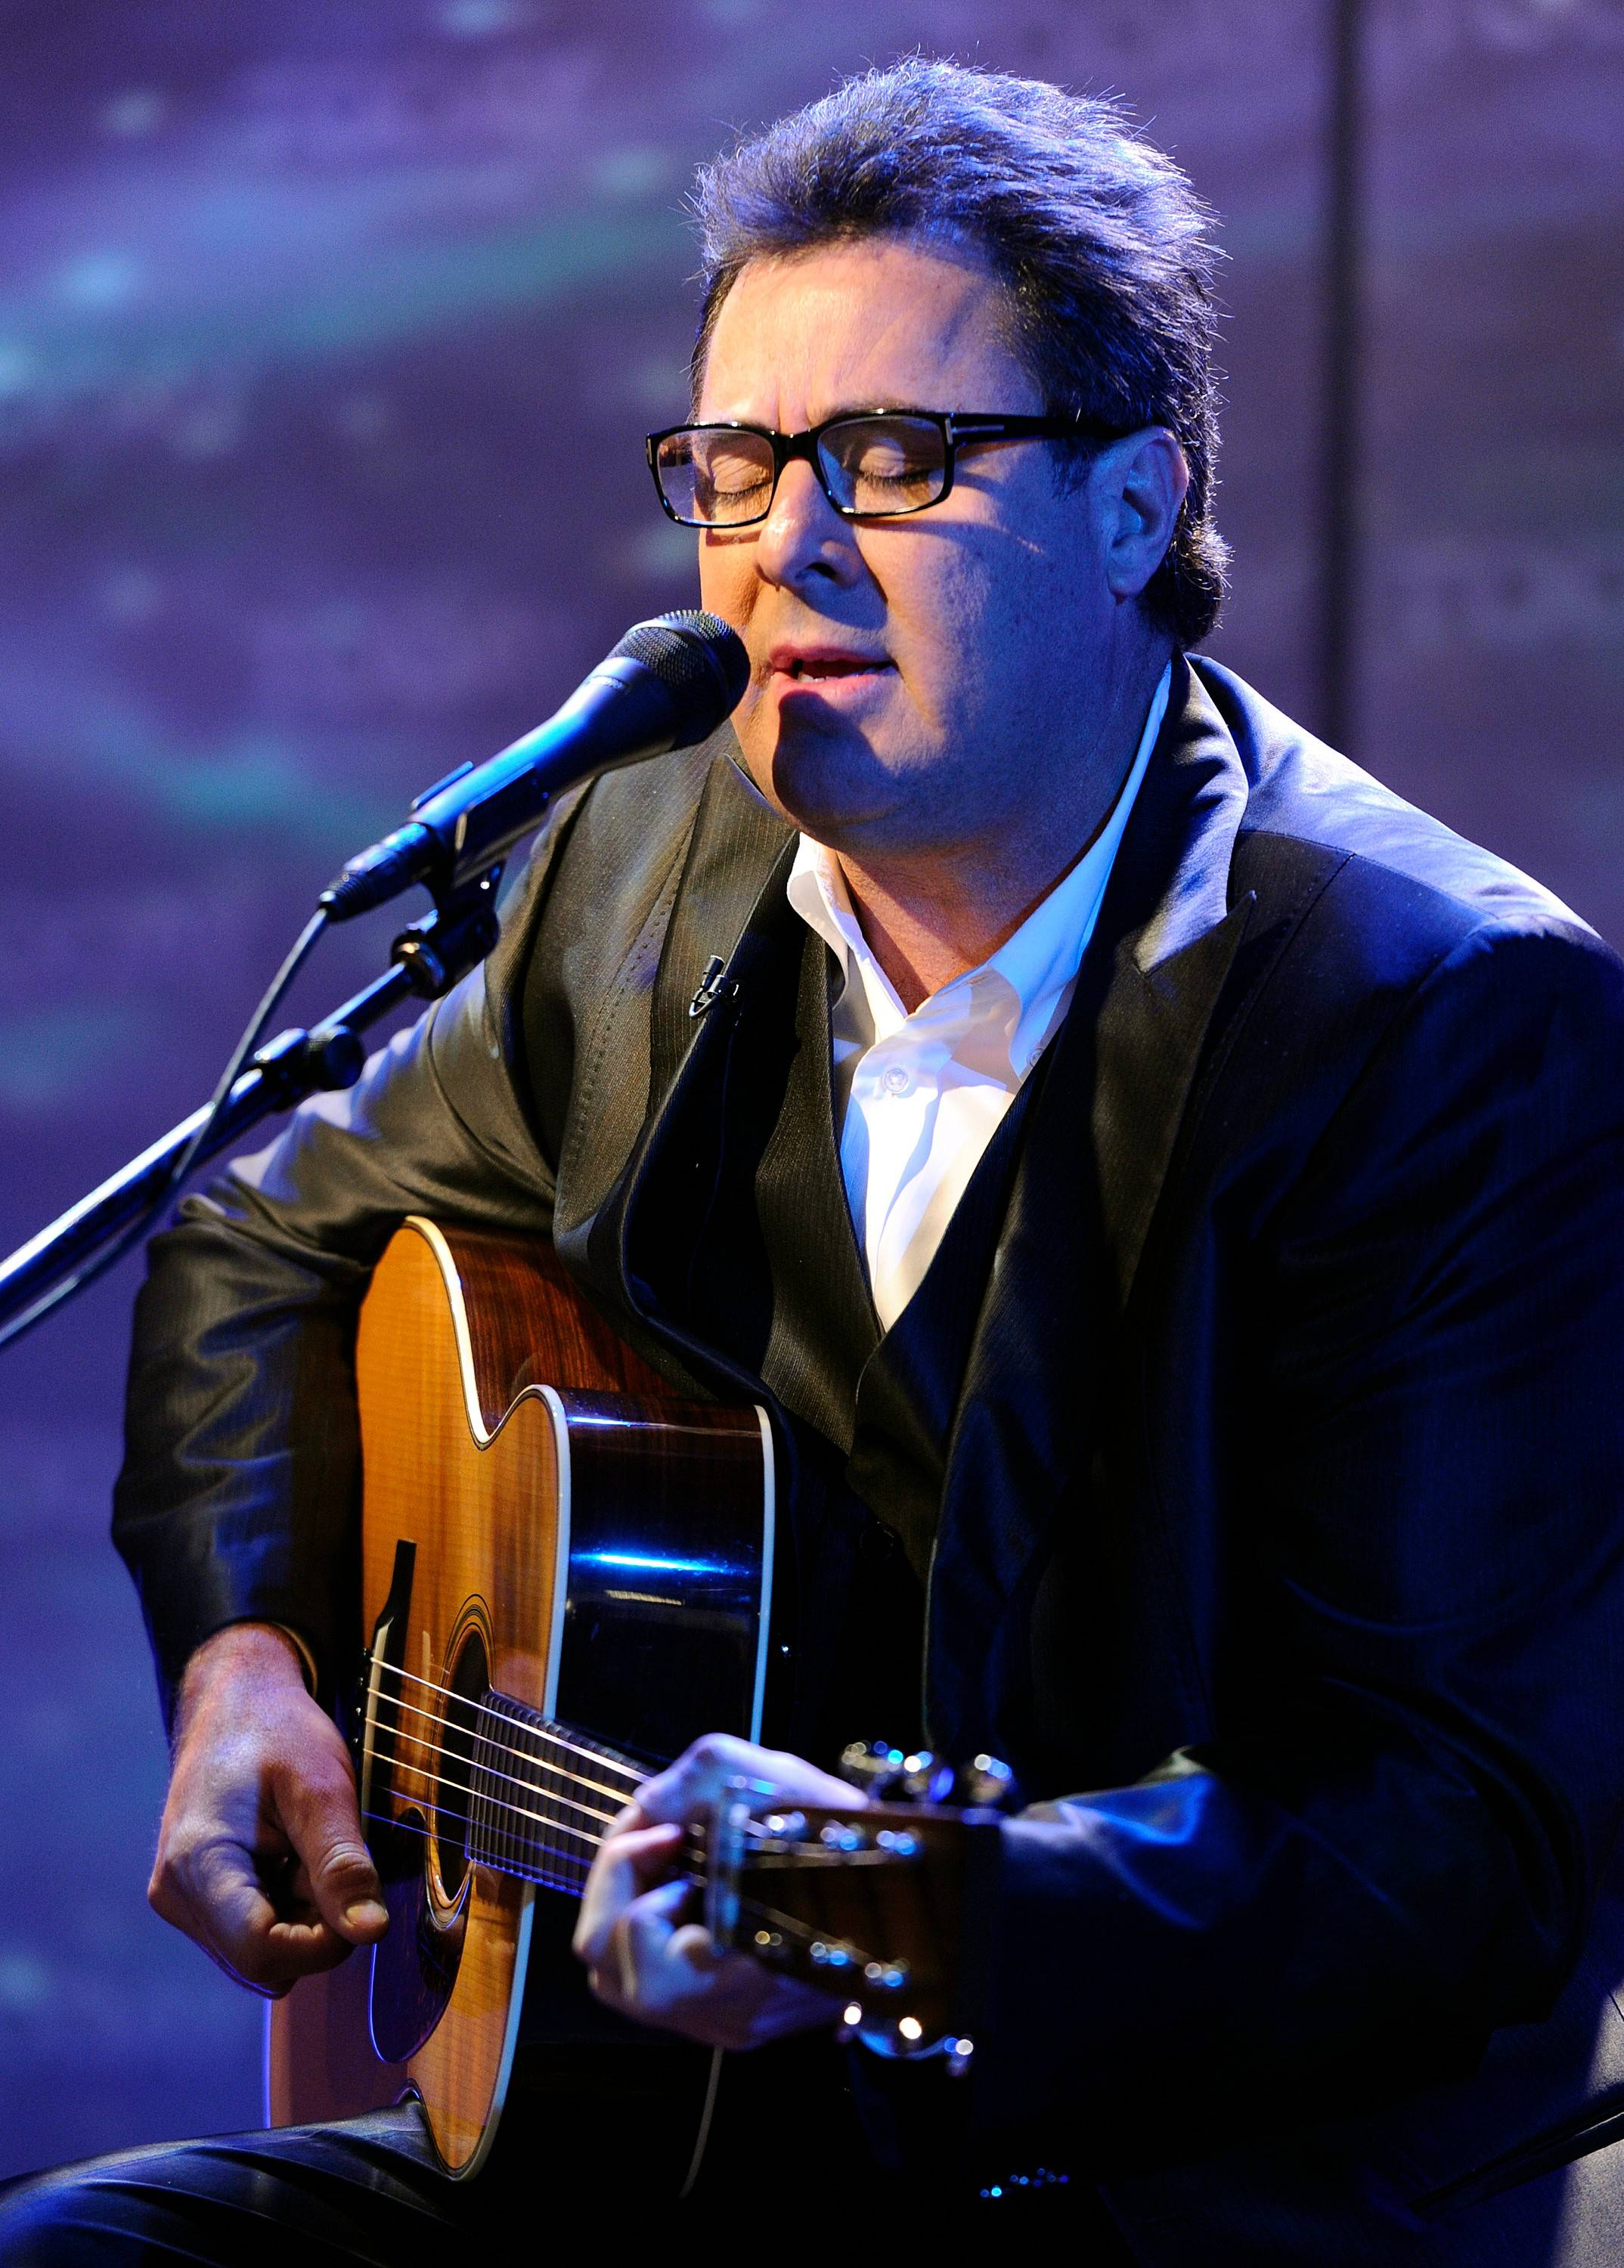 Country singer Vince Gill has sung and played guitar on countless albums, in many musical genres. Yet he remains true to his humble Oklahoma roots.